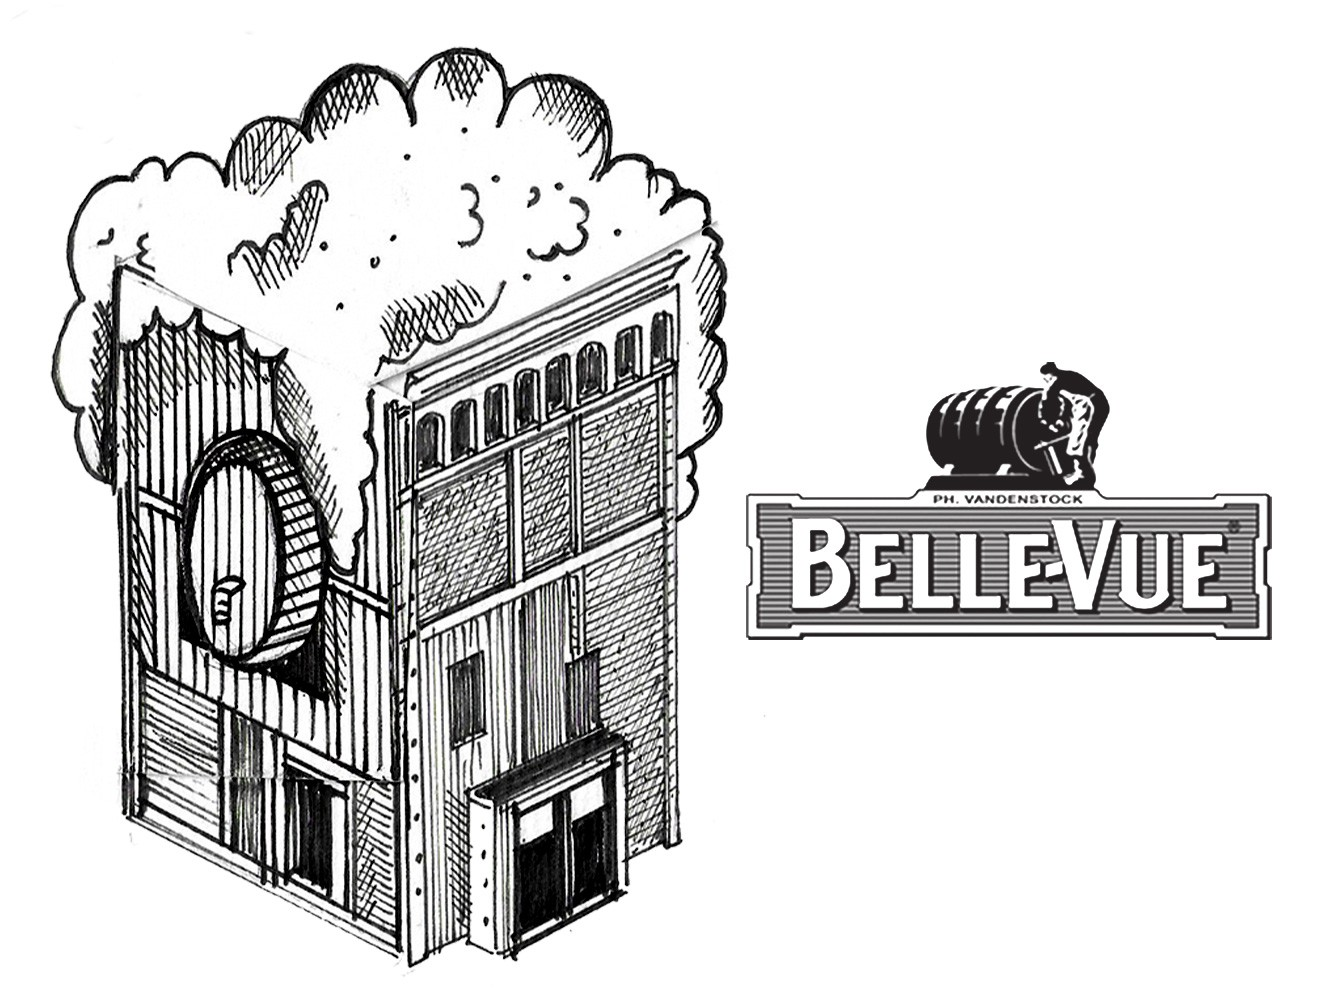 The Brewery Belle-Vue